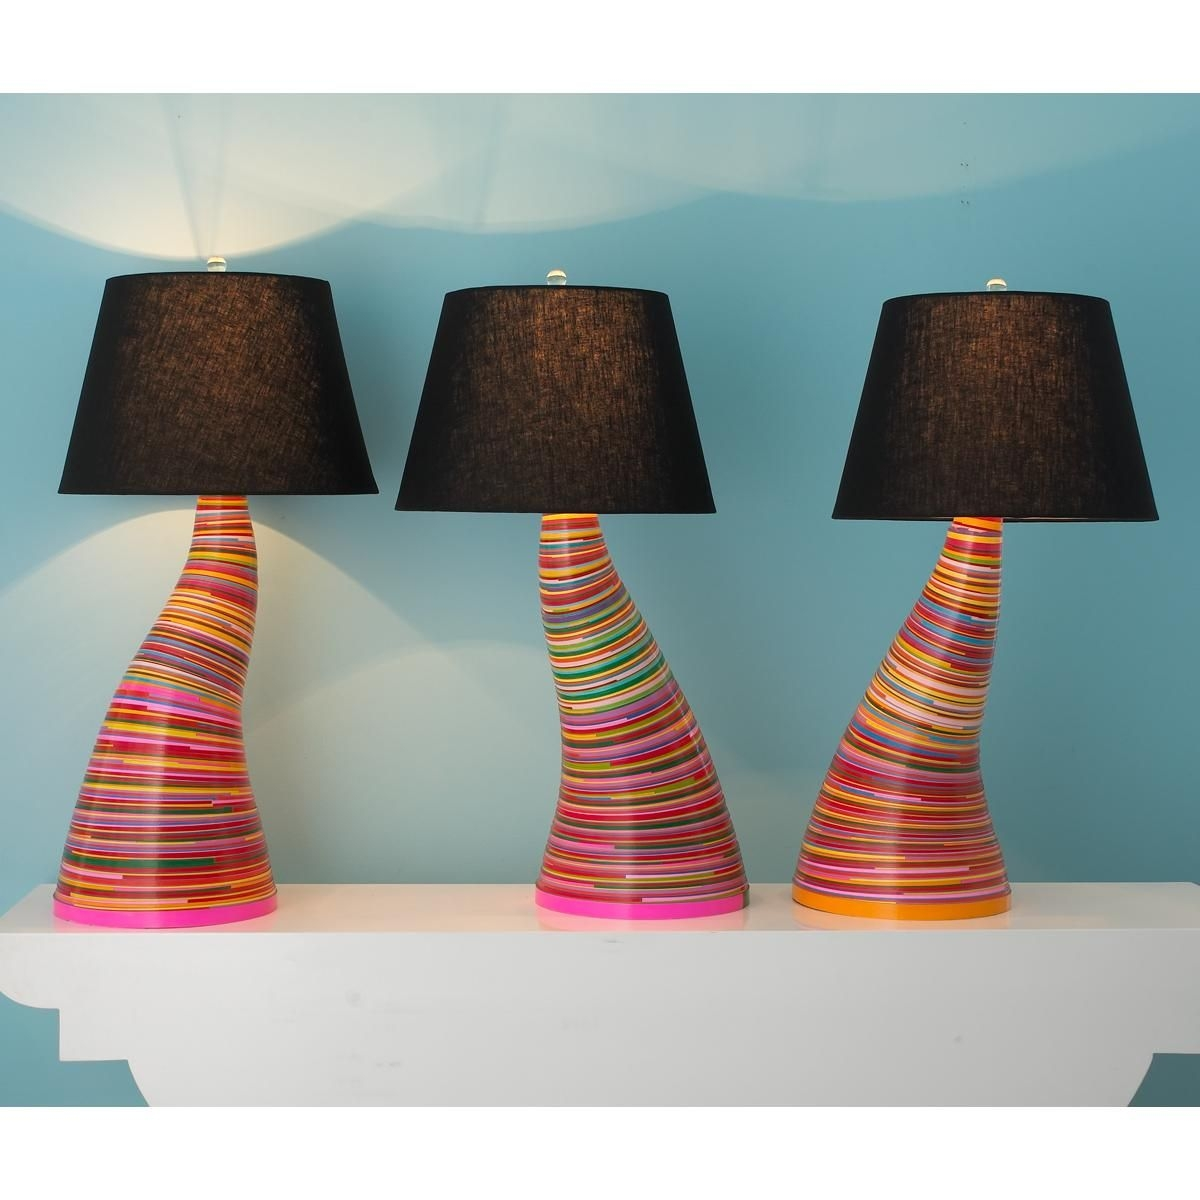 Paper Coil Table Lamp I Bet I Could Make This